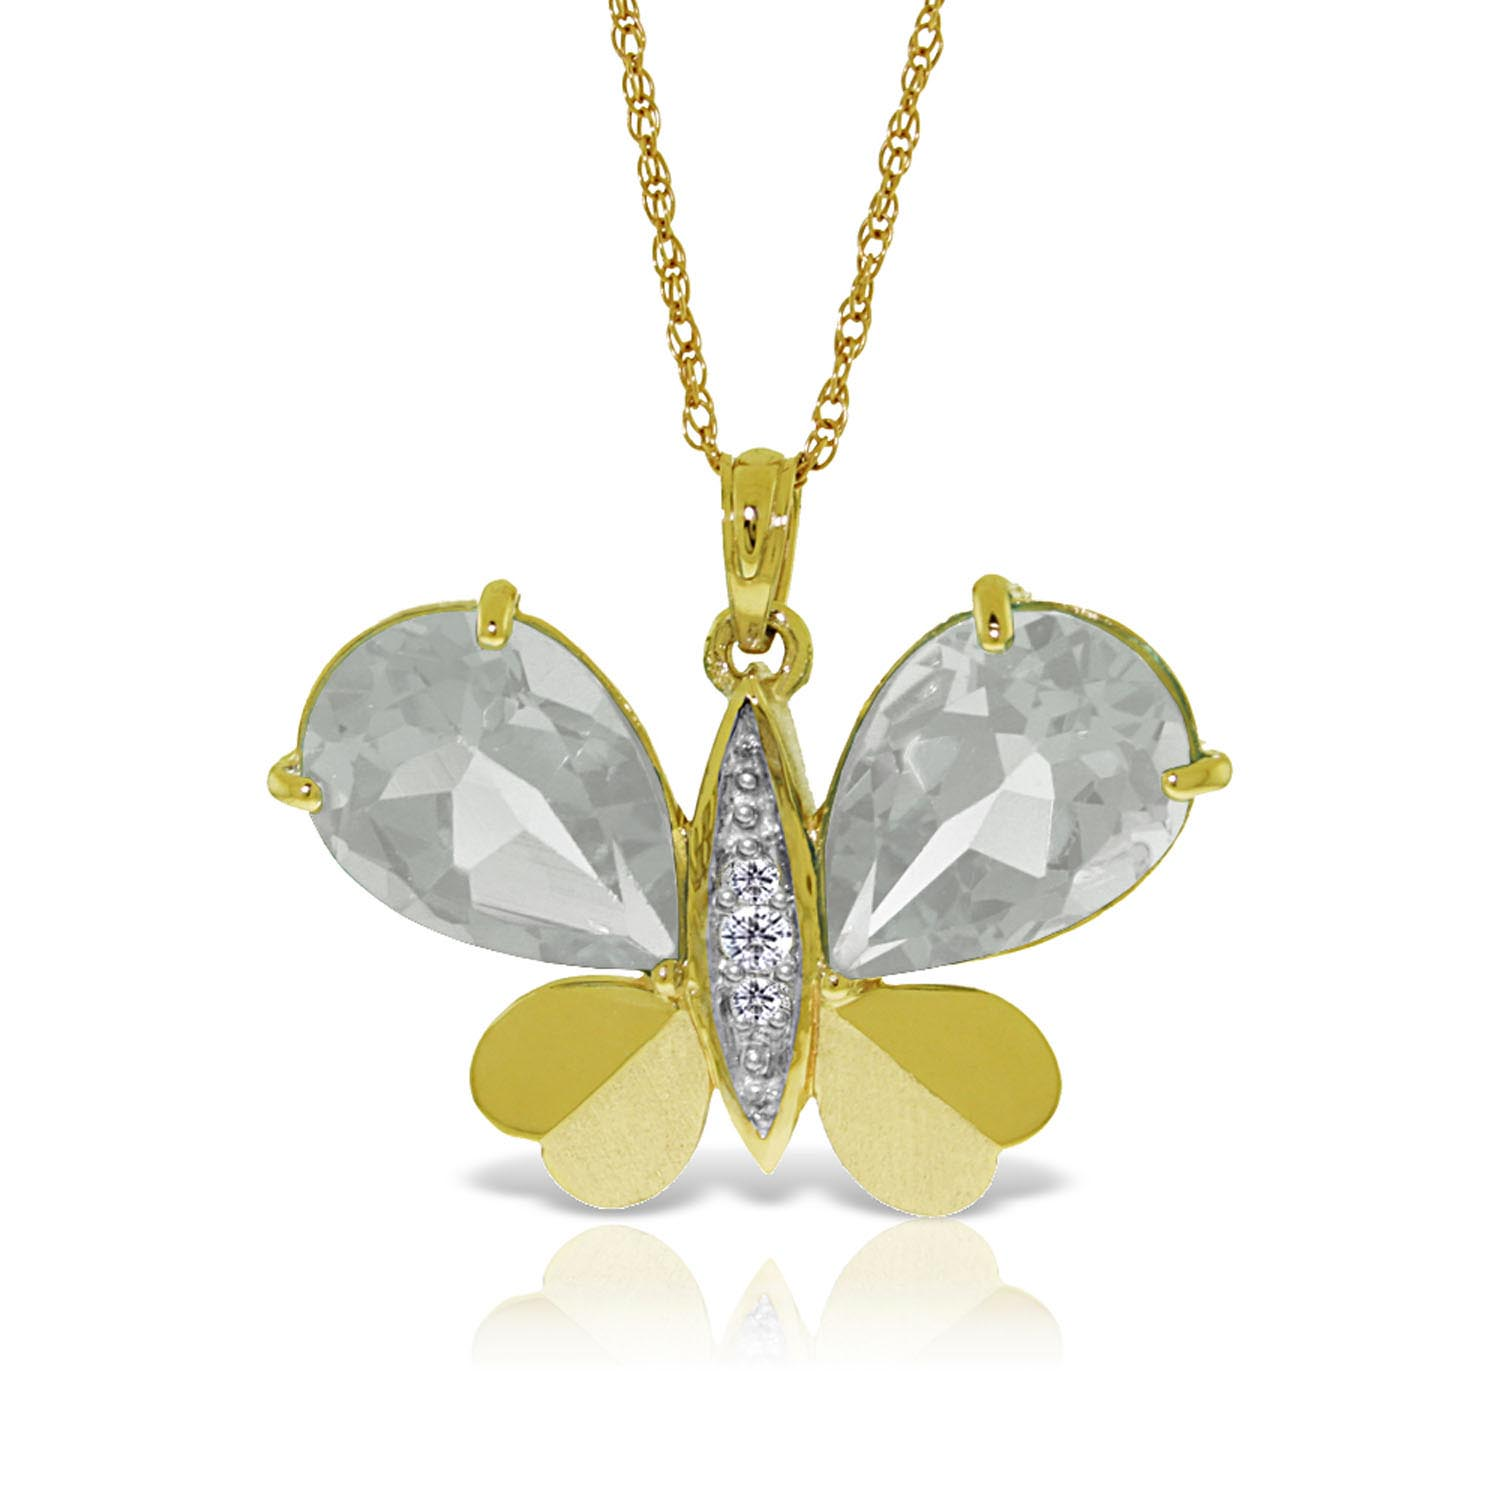 White Topaz and Diamond Butterfly Pendant Necklace 11.0ctw in 9ct Gold